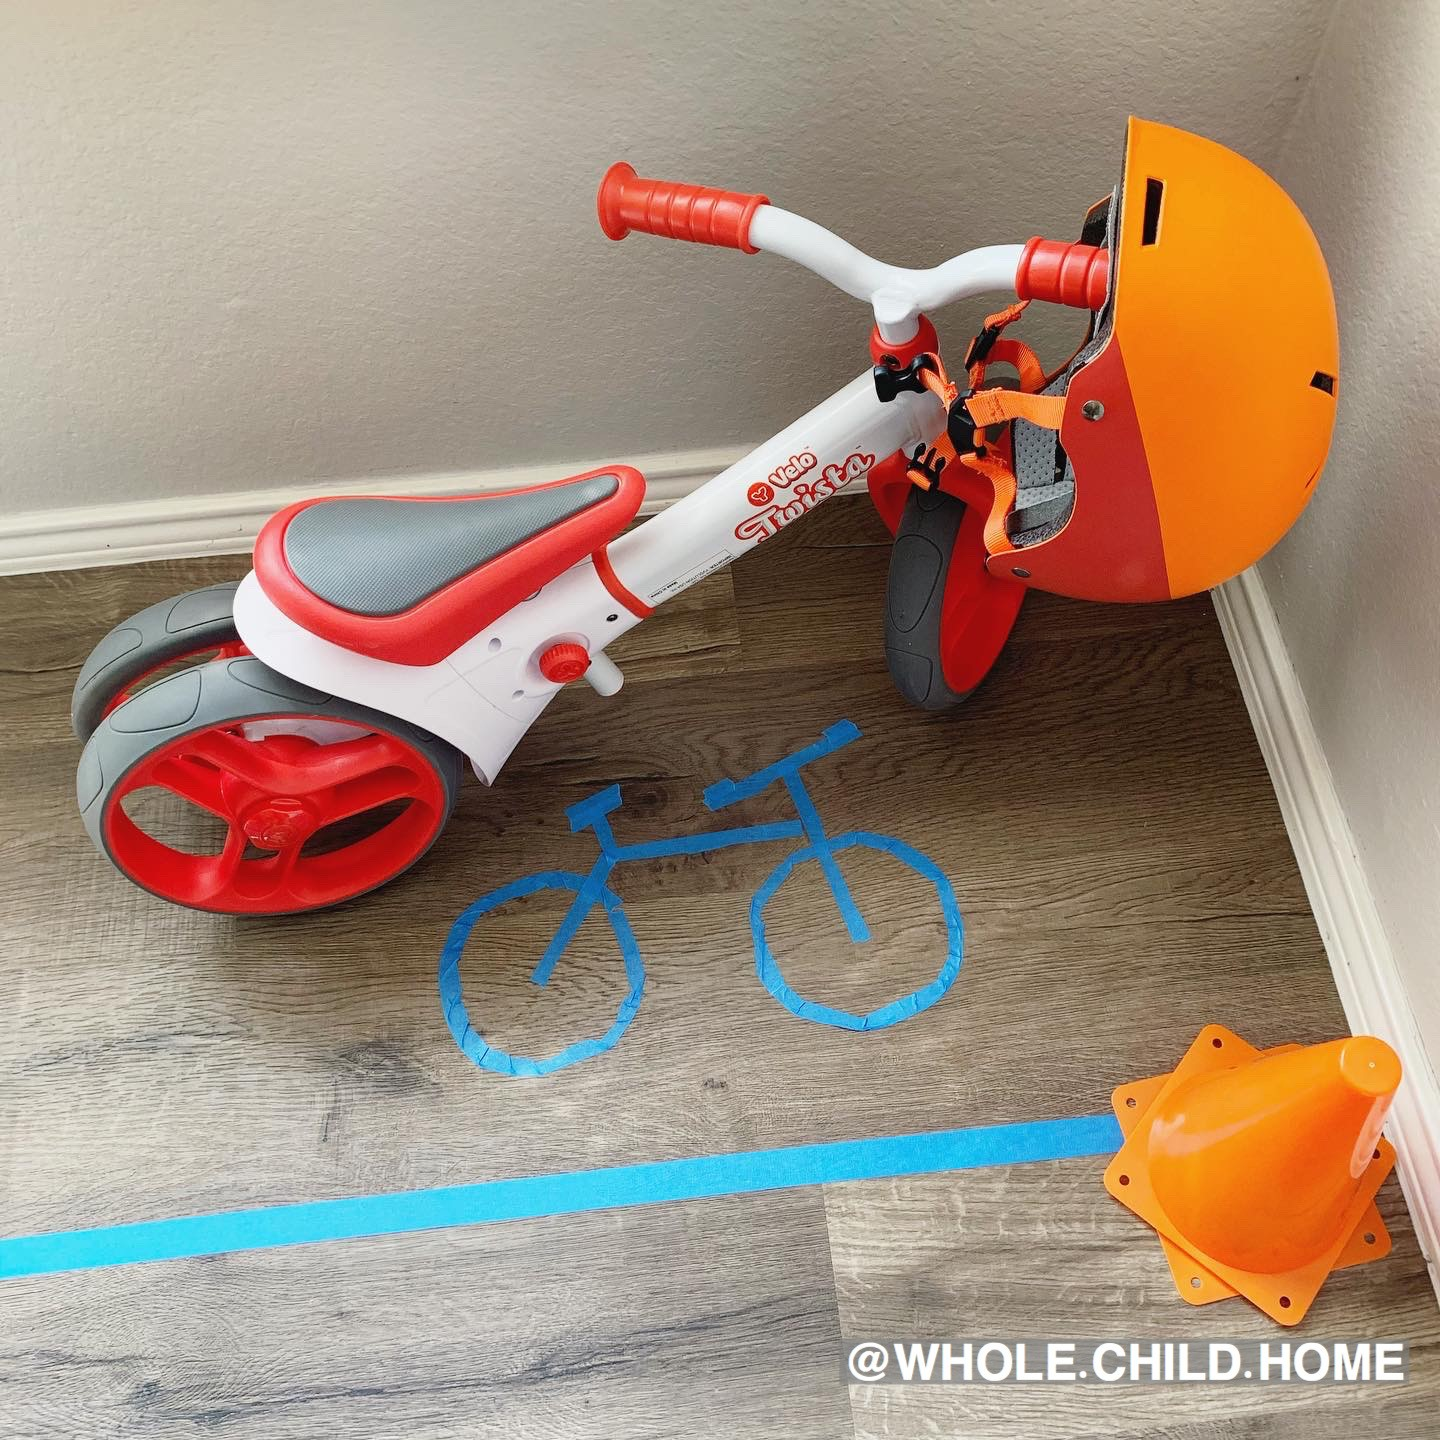 Montessori at Home, prepared environment adapts, indoor bike parking with painter's tape